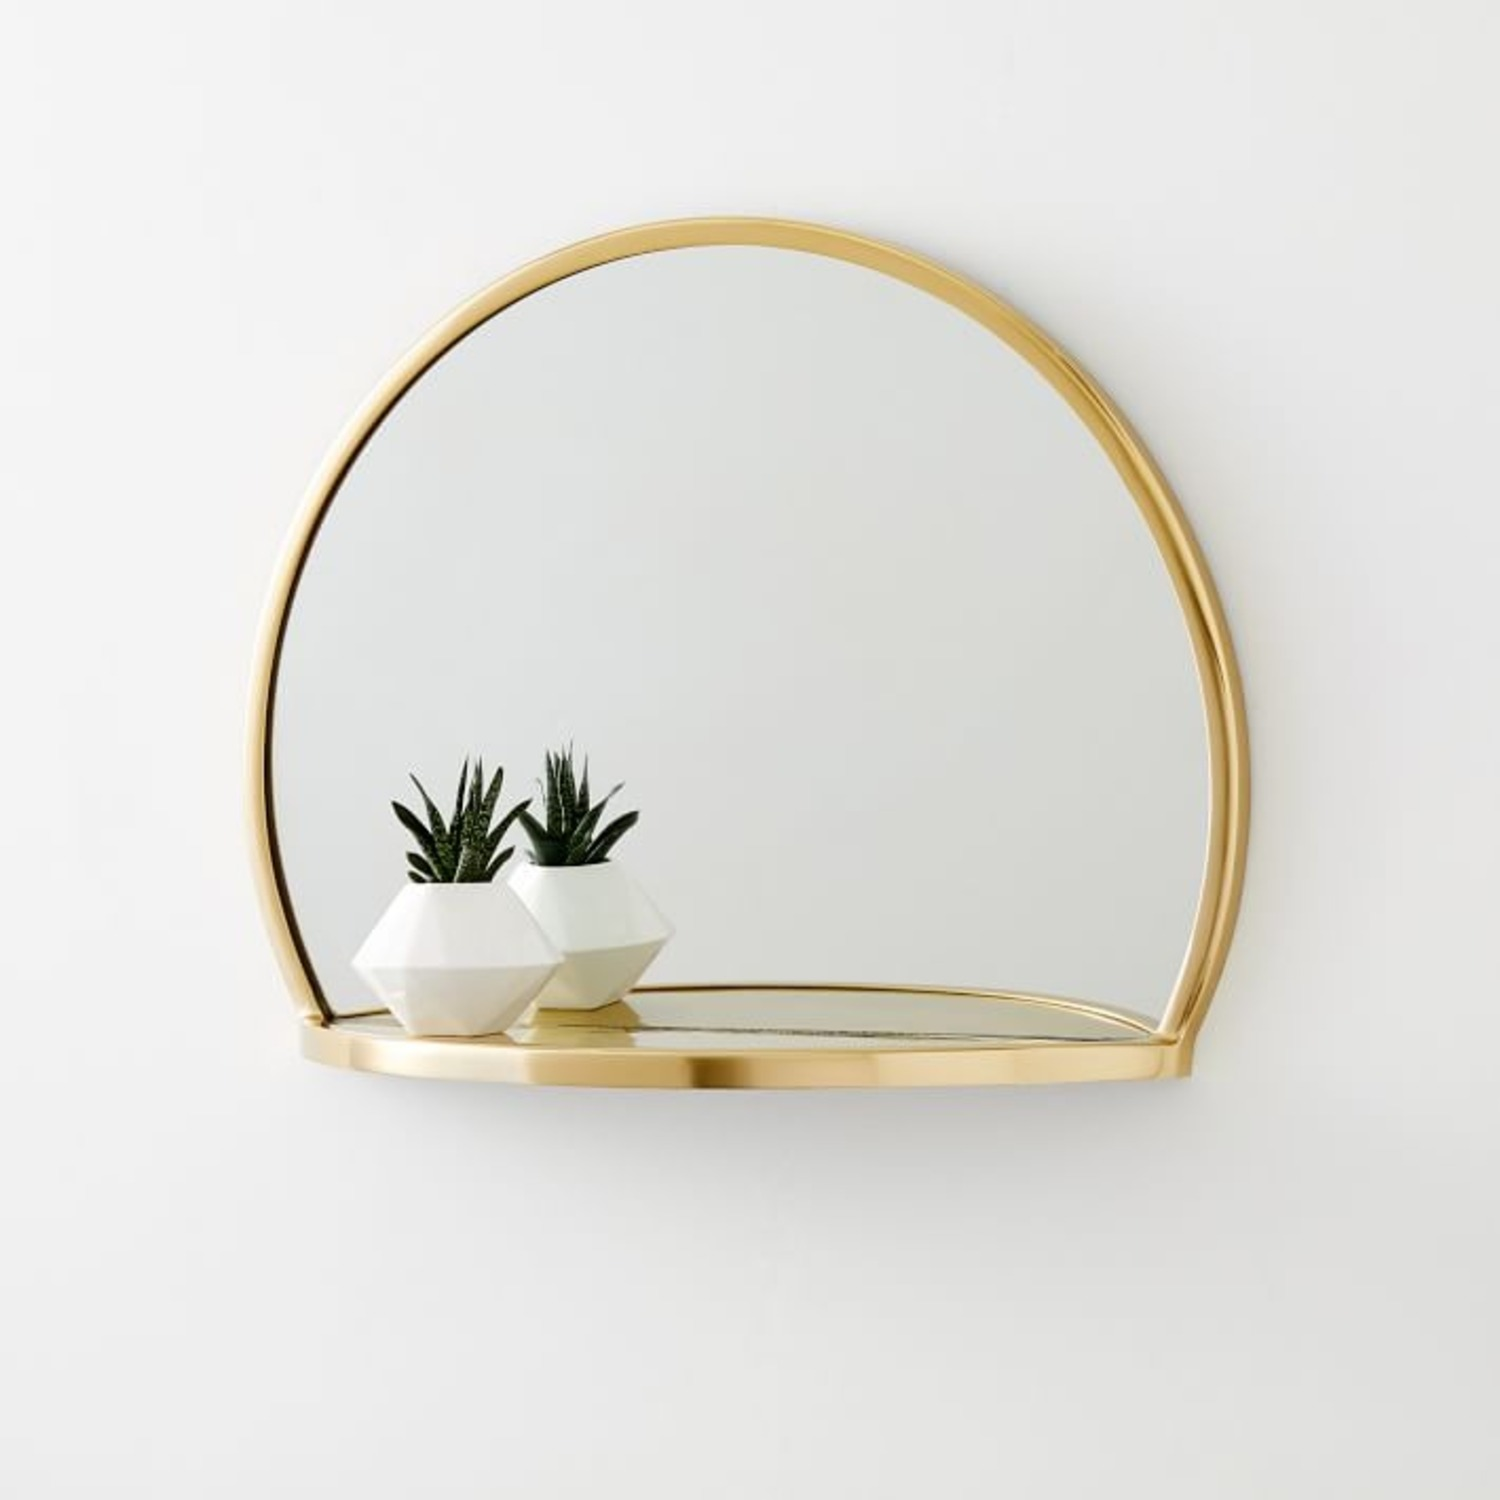 West Elm Decorated Brass Circle Shelf Mirror - image-2